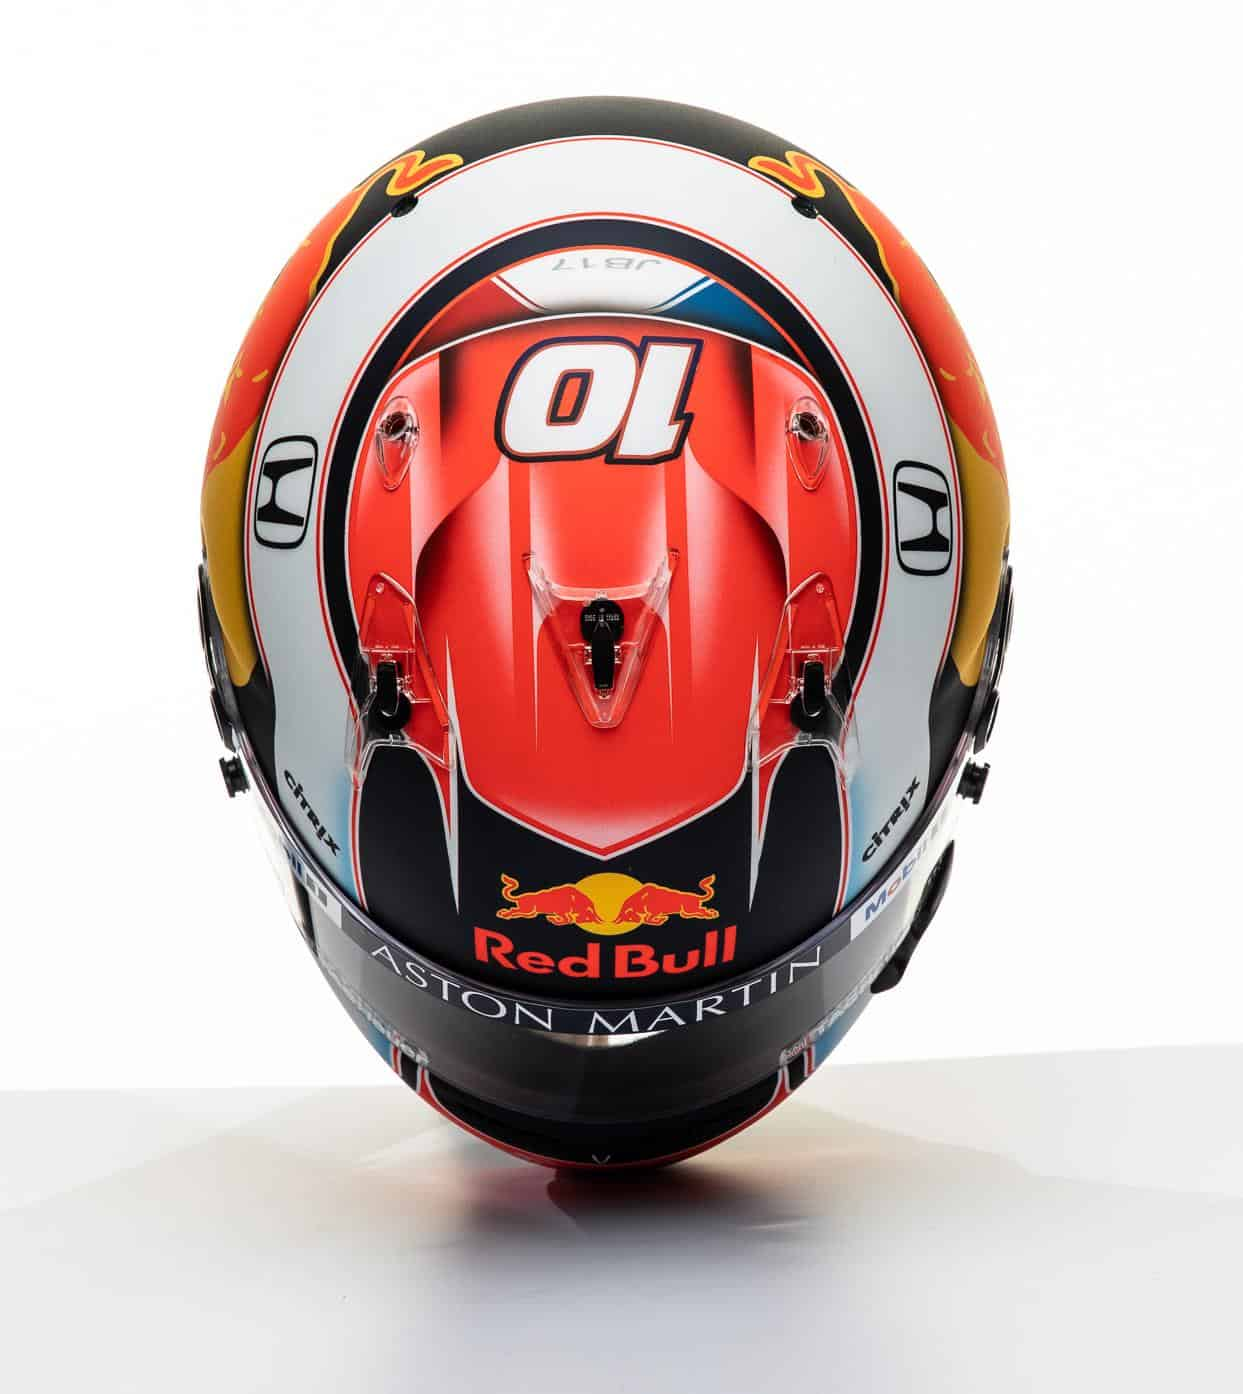 2019 F1 Pierre Gasly Red Bull Honda helmet top Photo Red Bull Edited by MAXF1net